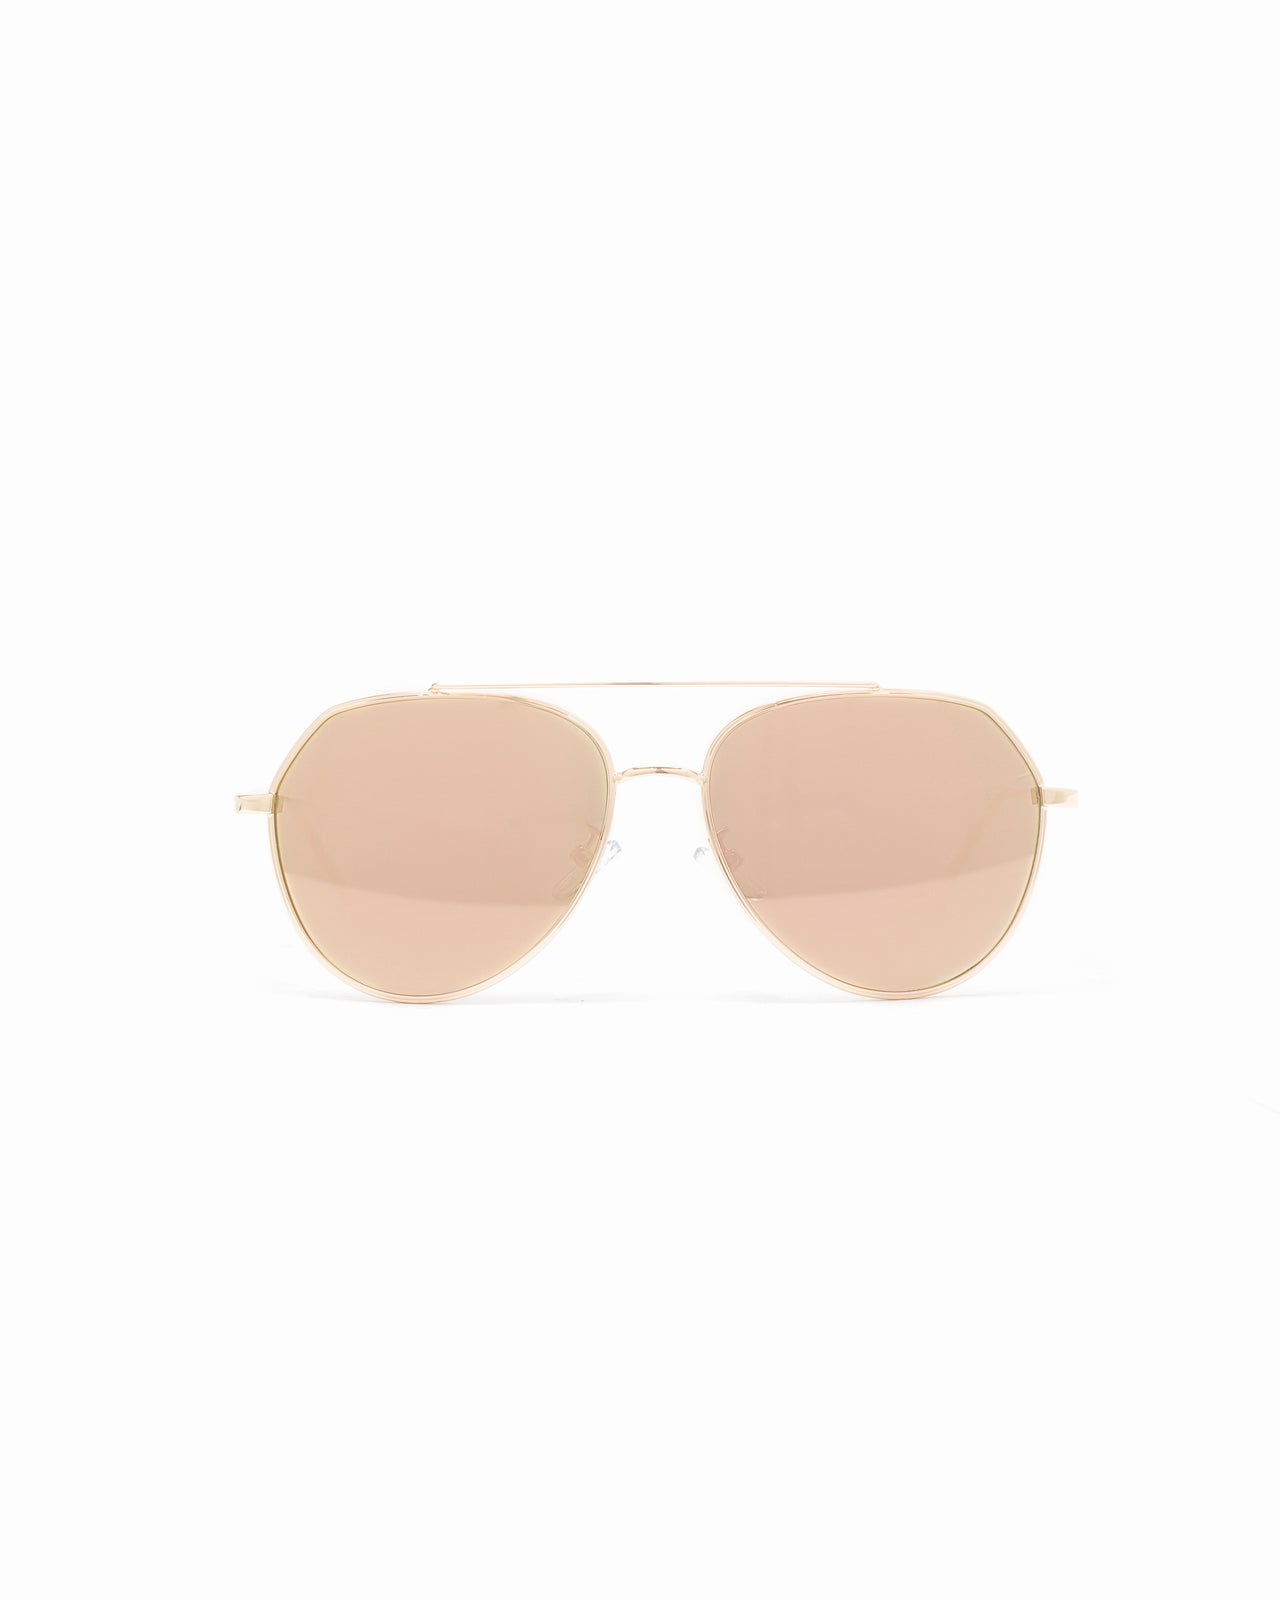 The B8020 Aviators - Color: Gold | Gold